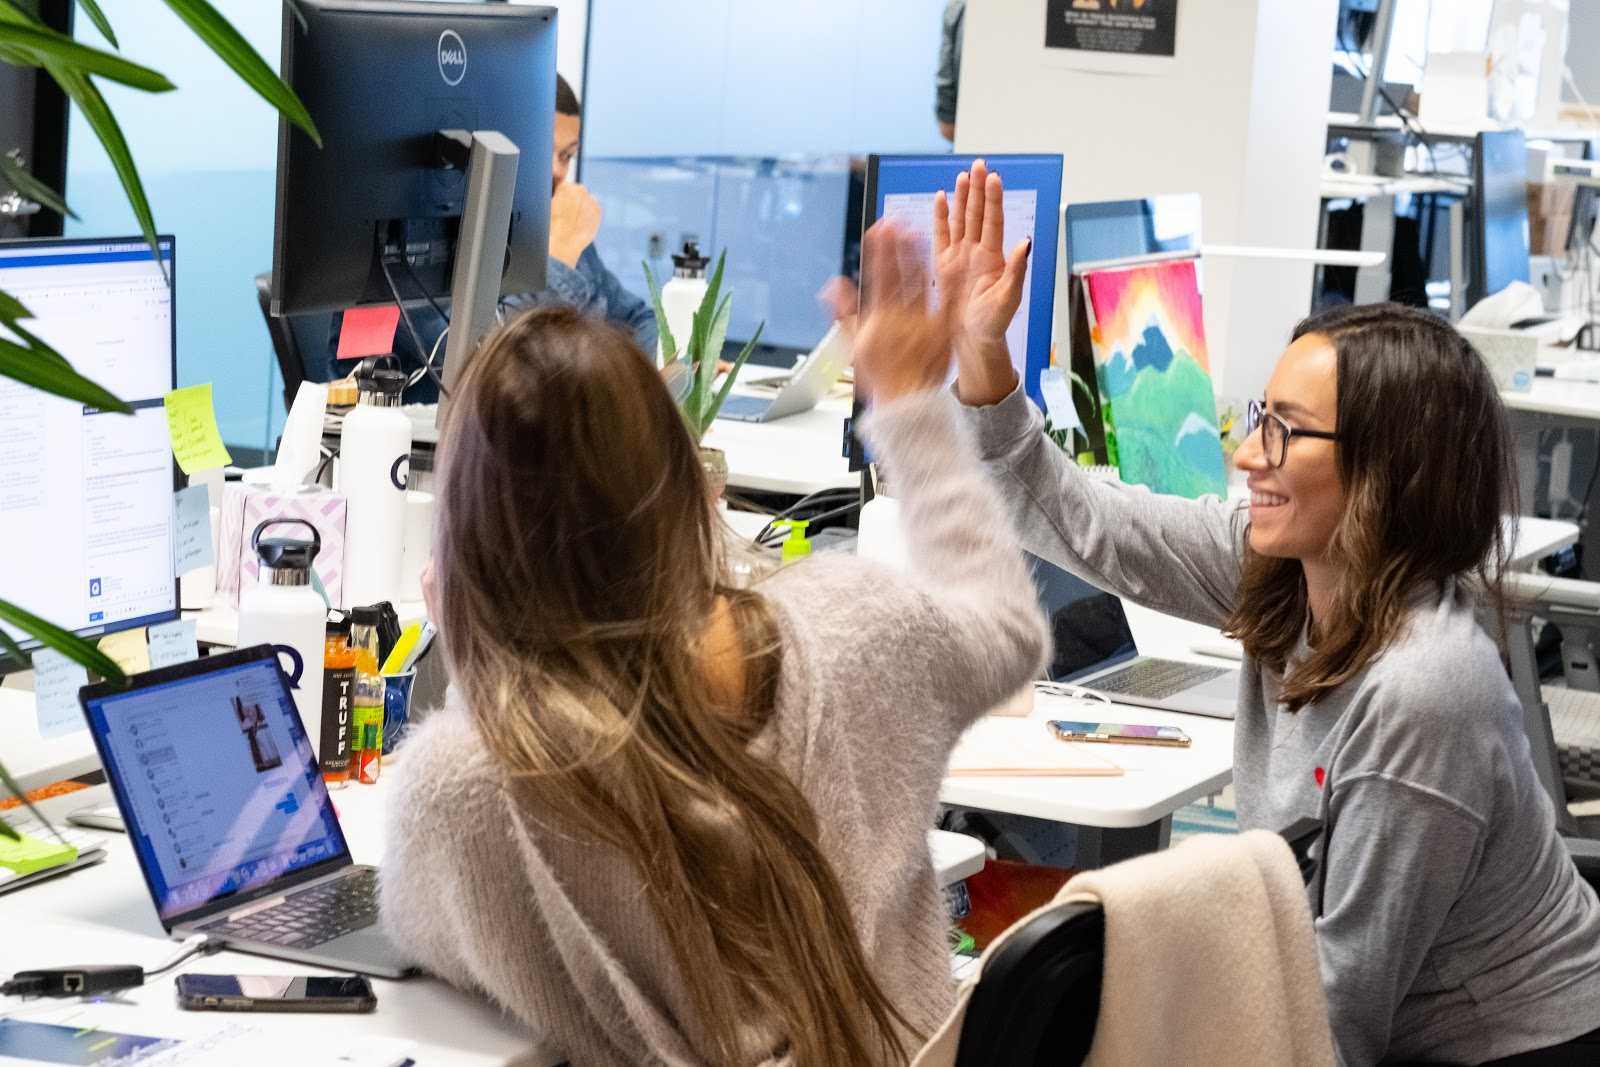 Quizlet employees at their office doing a high-five